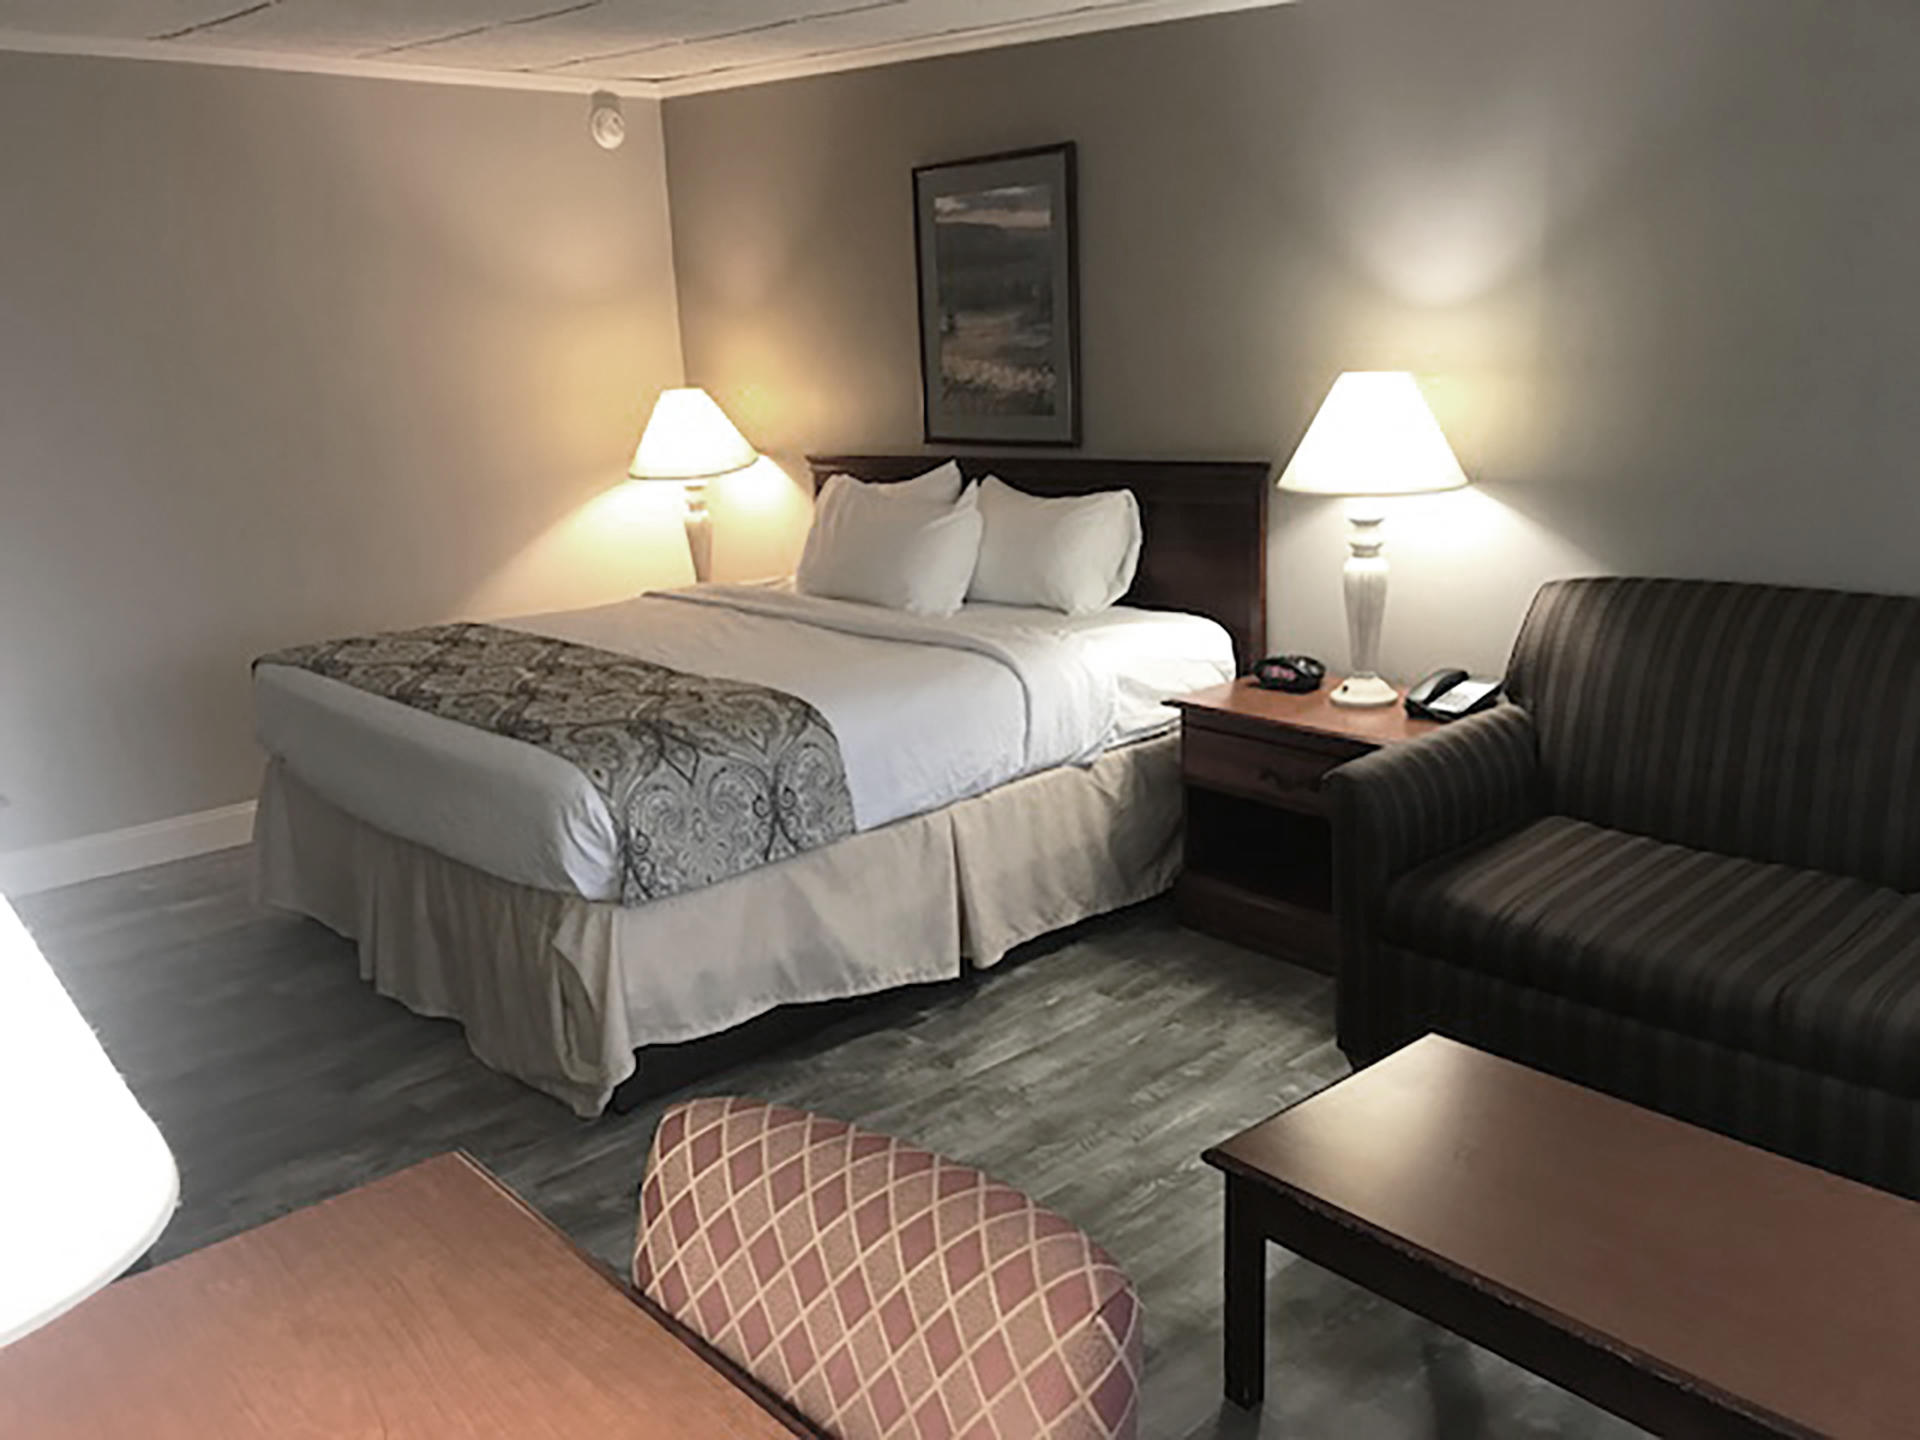 king bed in hotel room with couch